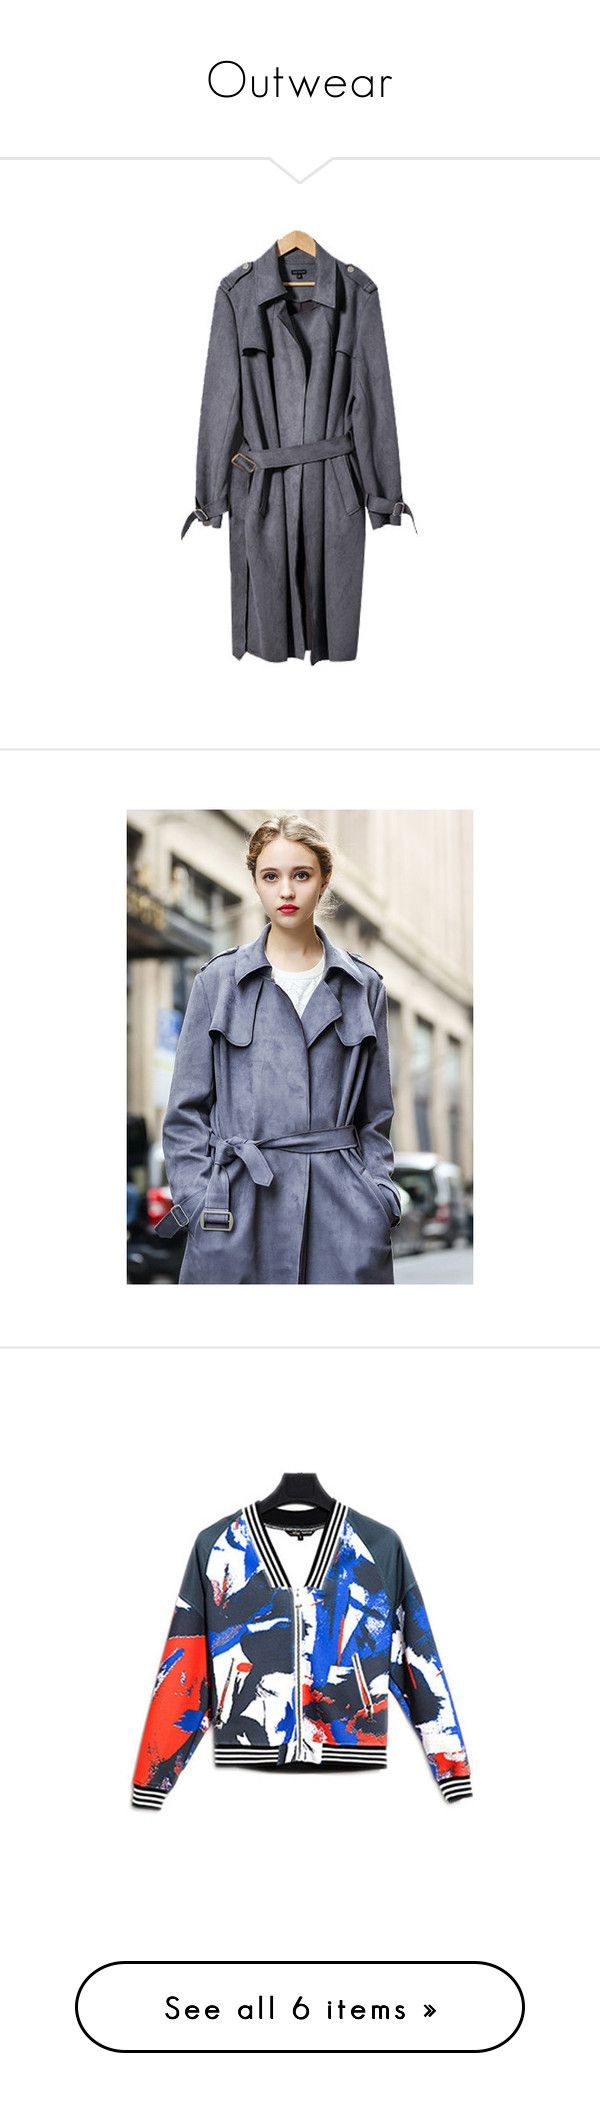 """""""Outwear"""" by stargazerfashion on Polyvore featuring outerwear, coats, grey trench coat, faux suede coat, belted trench coat, grey oversized coat, belted coat, cropped trench coat, gray coat and trench coat"""